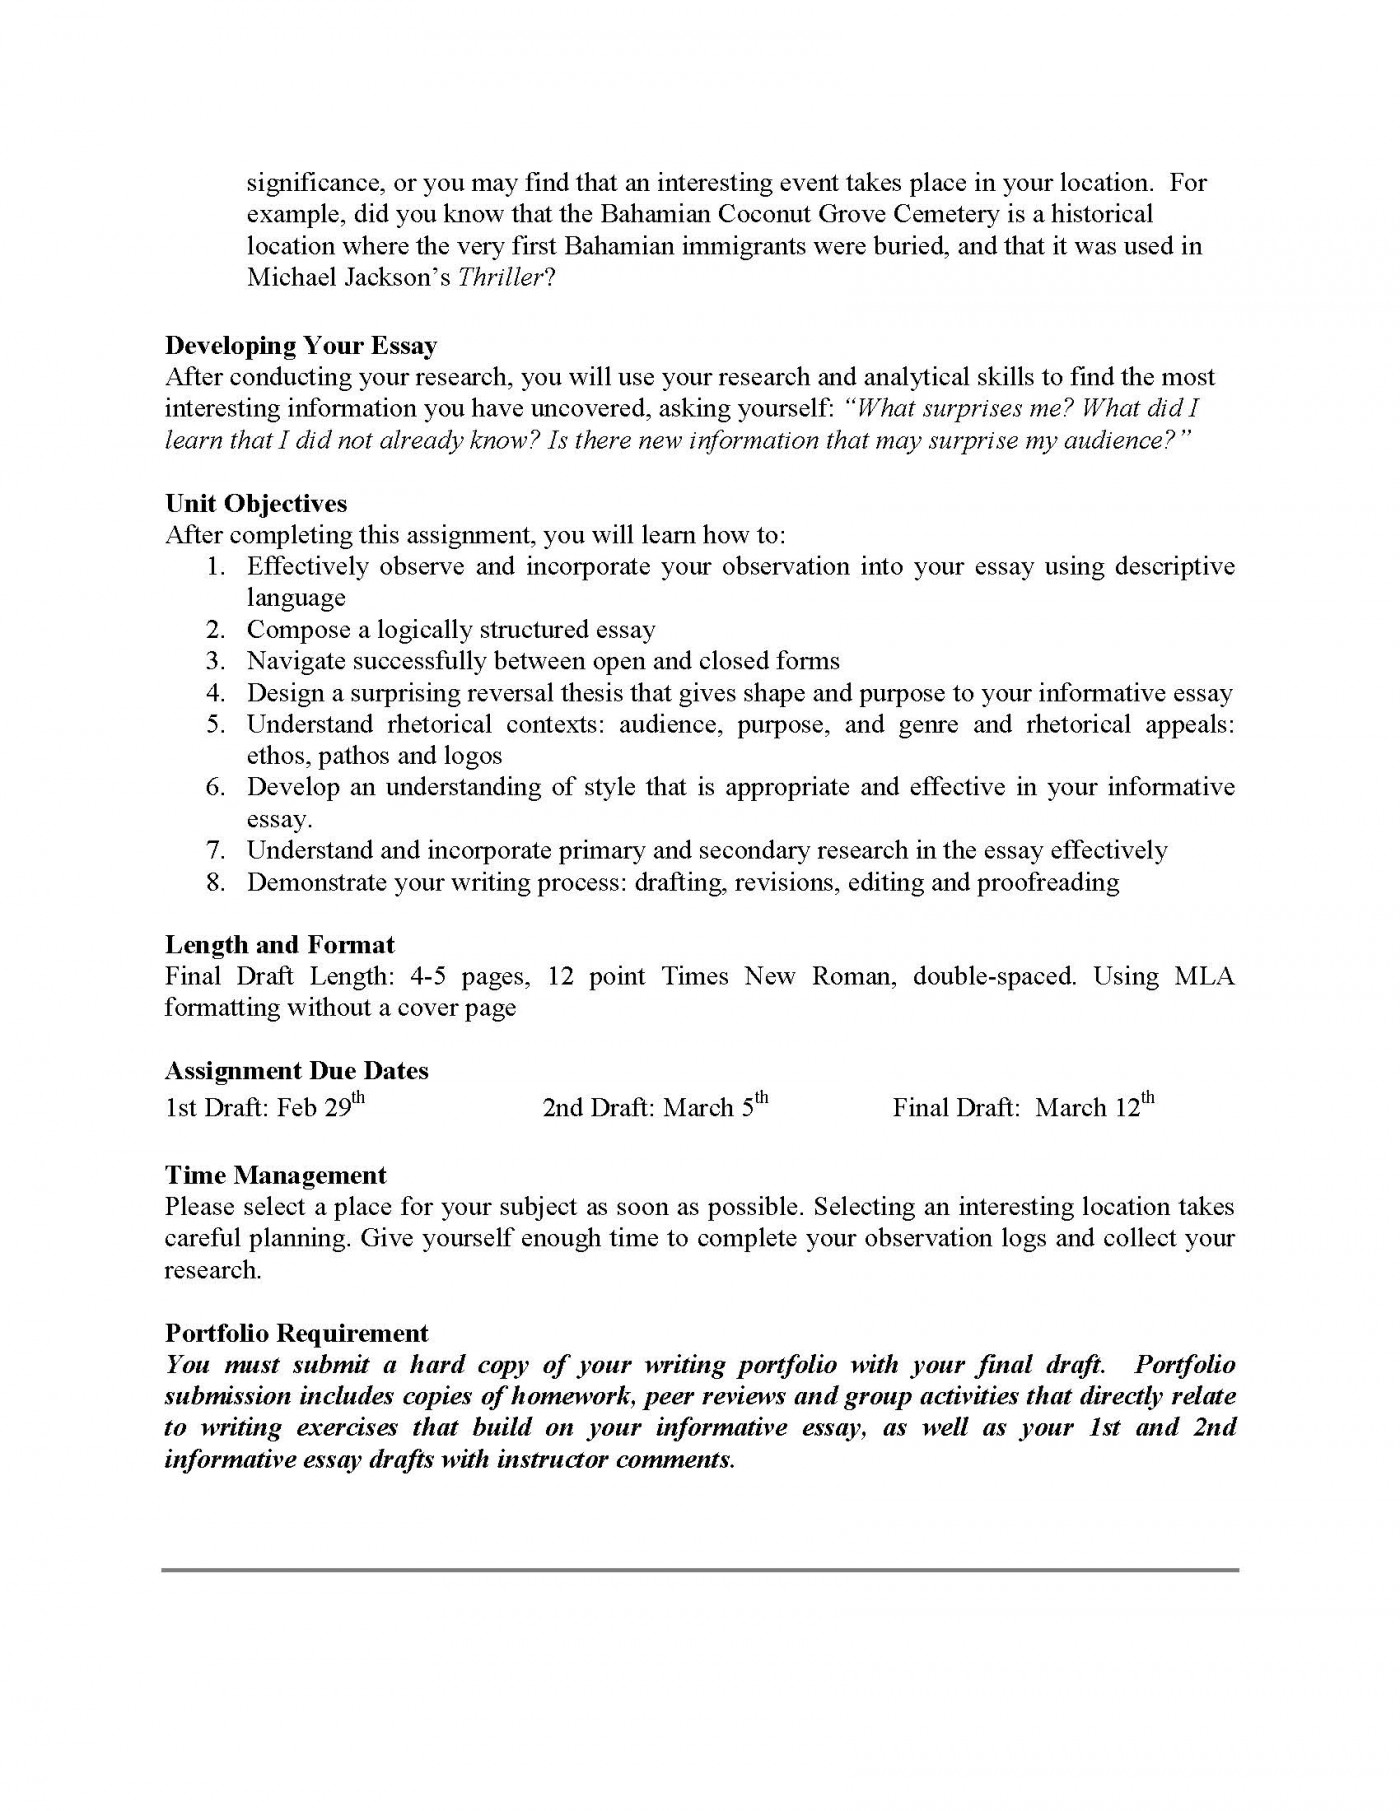 010 Informative Essay Ideas Unit Assignment Page 2 Wondrous Prompts Writing Topics 4th Grade Expository Middle School 1400